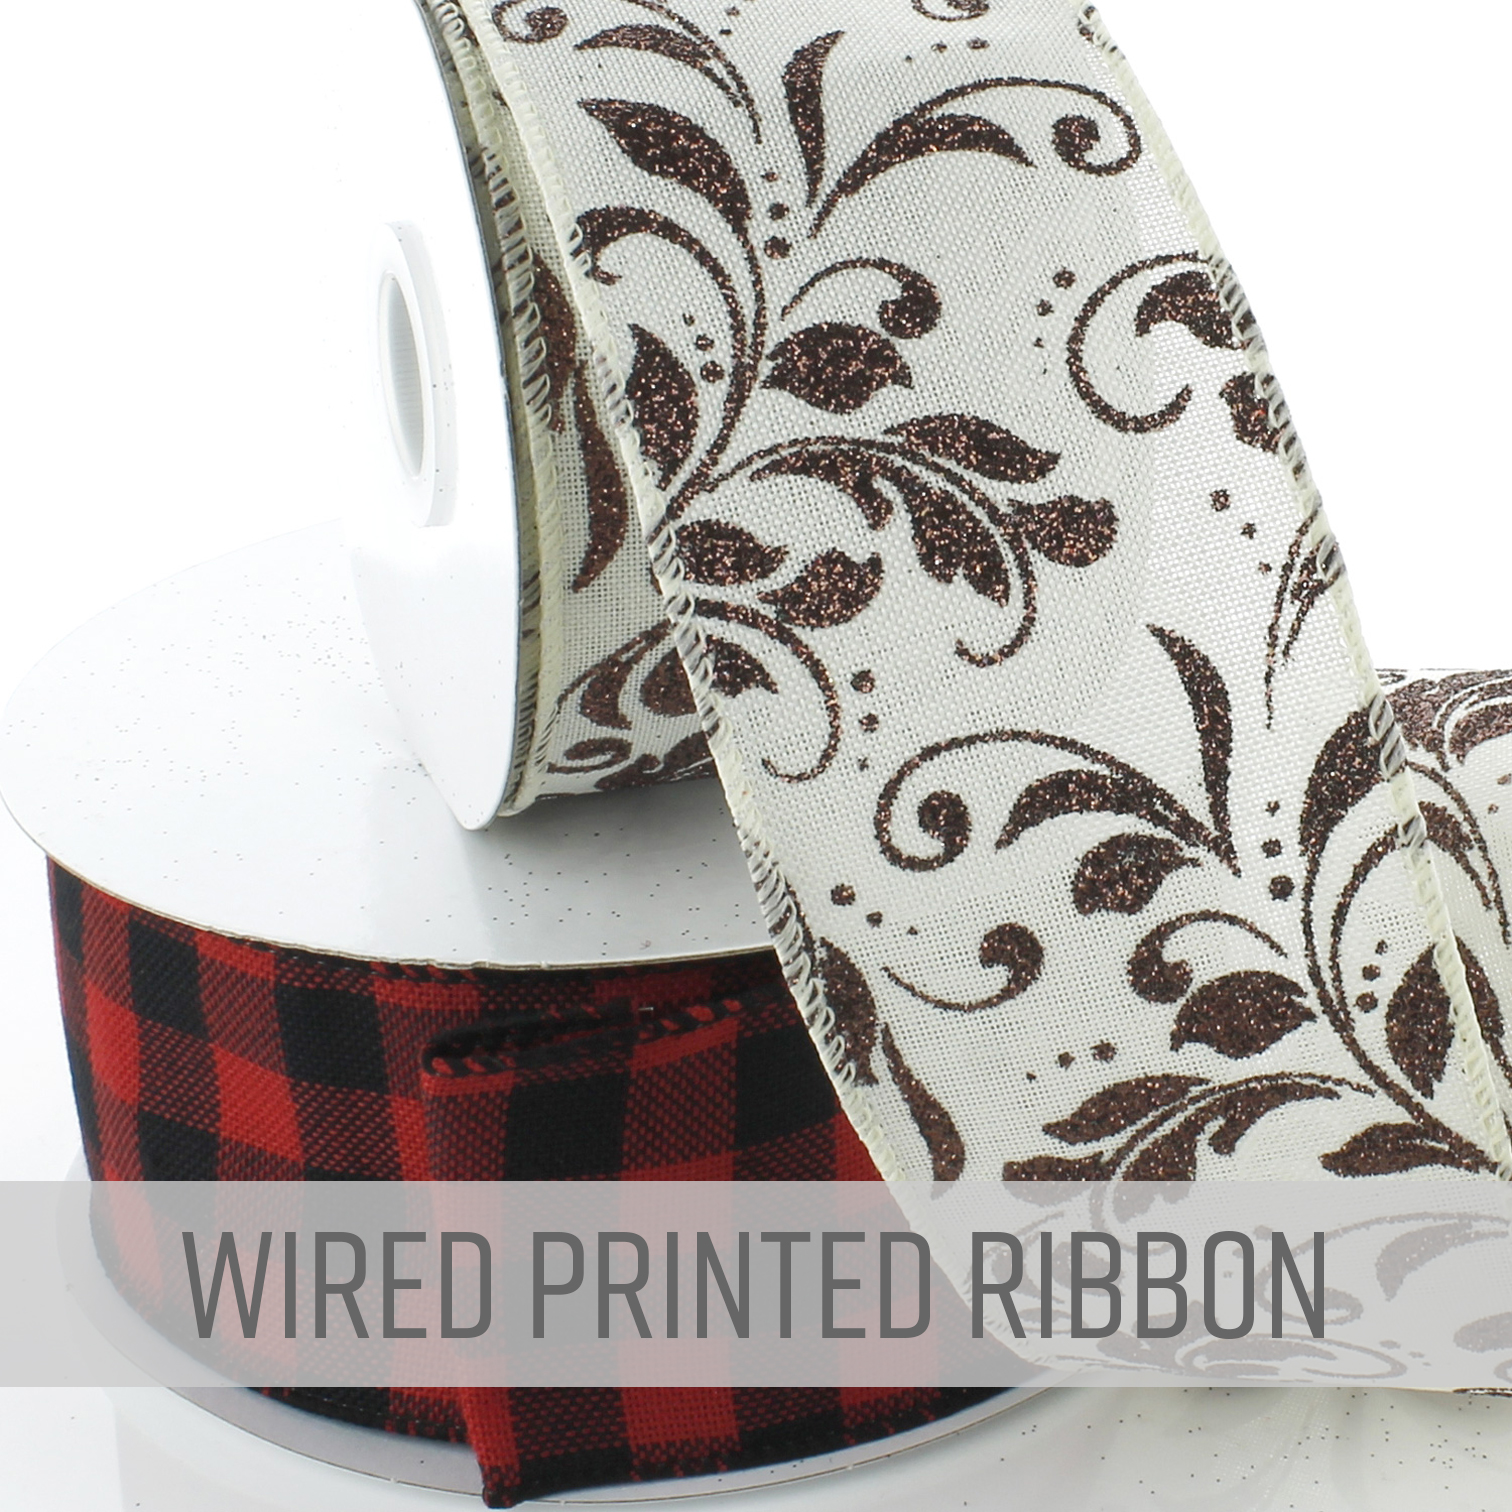 Wired Printed Ribbon